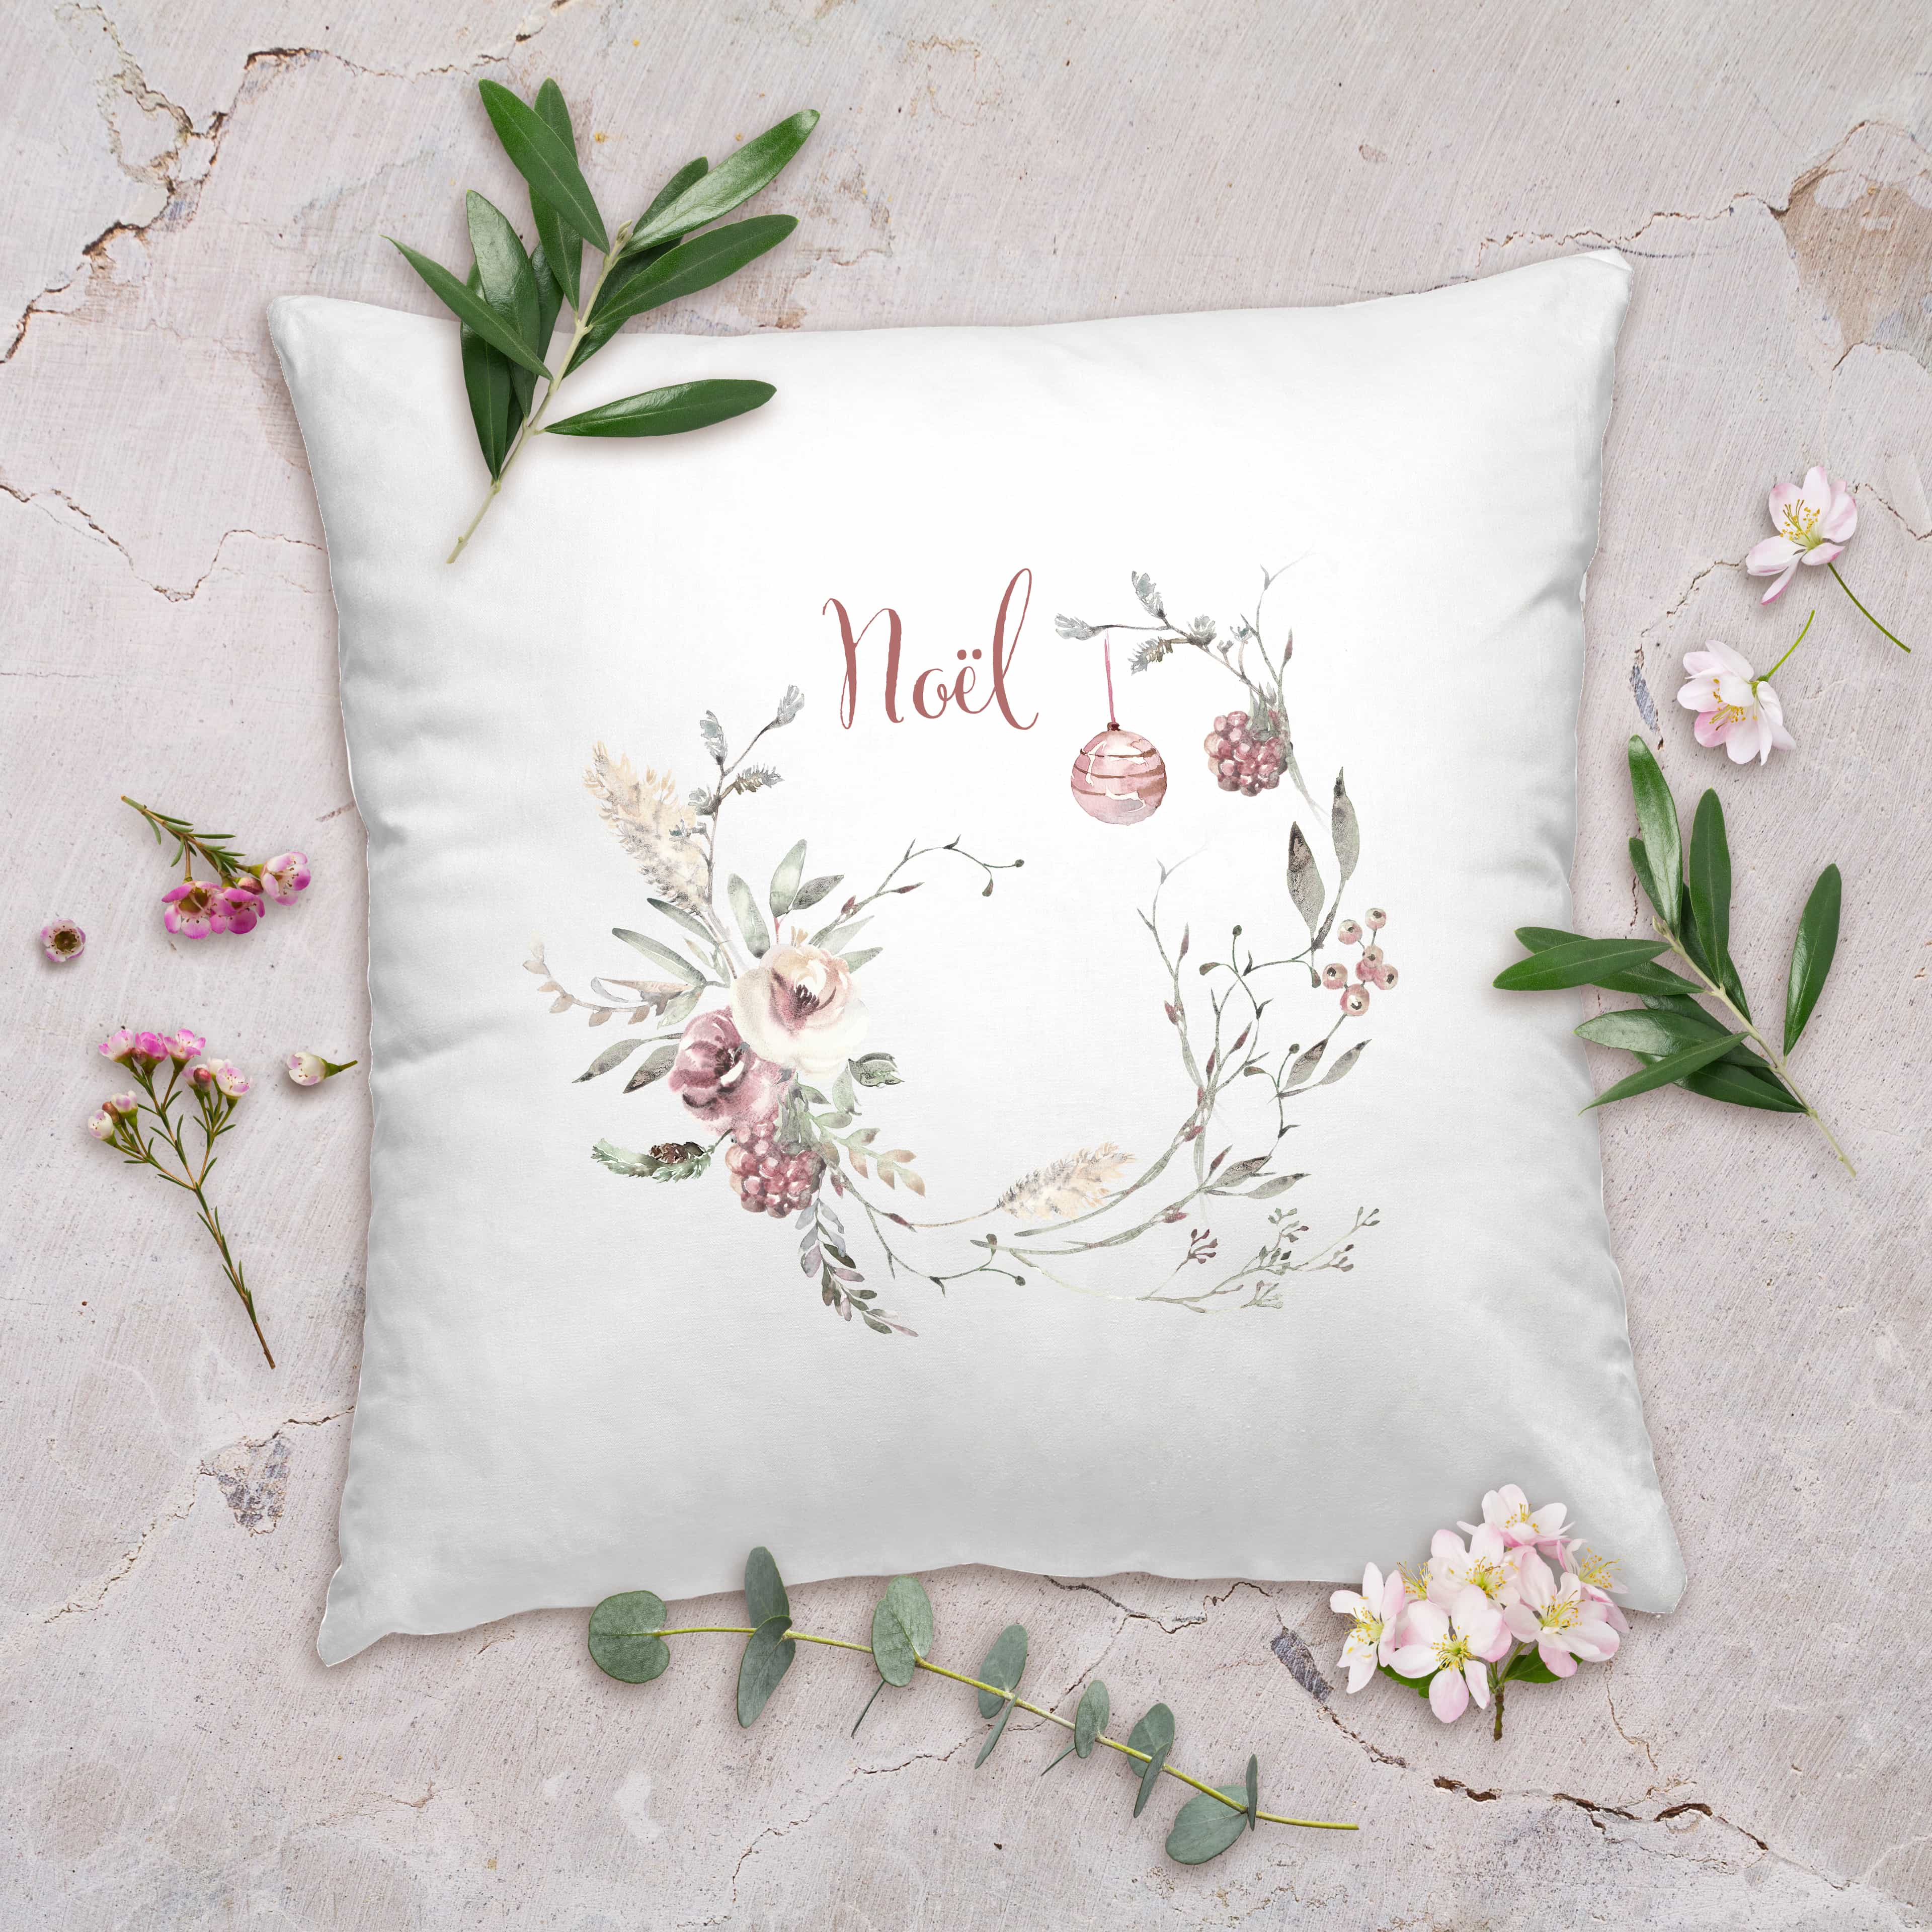 The Printables Collection And Was Requested Specifically We Re Delighted To Offer It Now Epitome Of Delicate French Country Style Our Noël Pillow